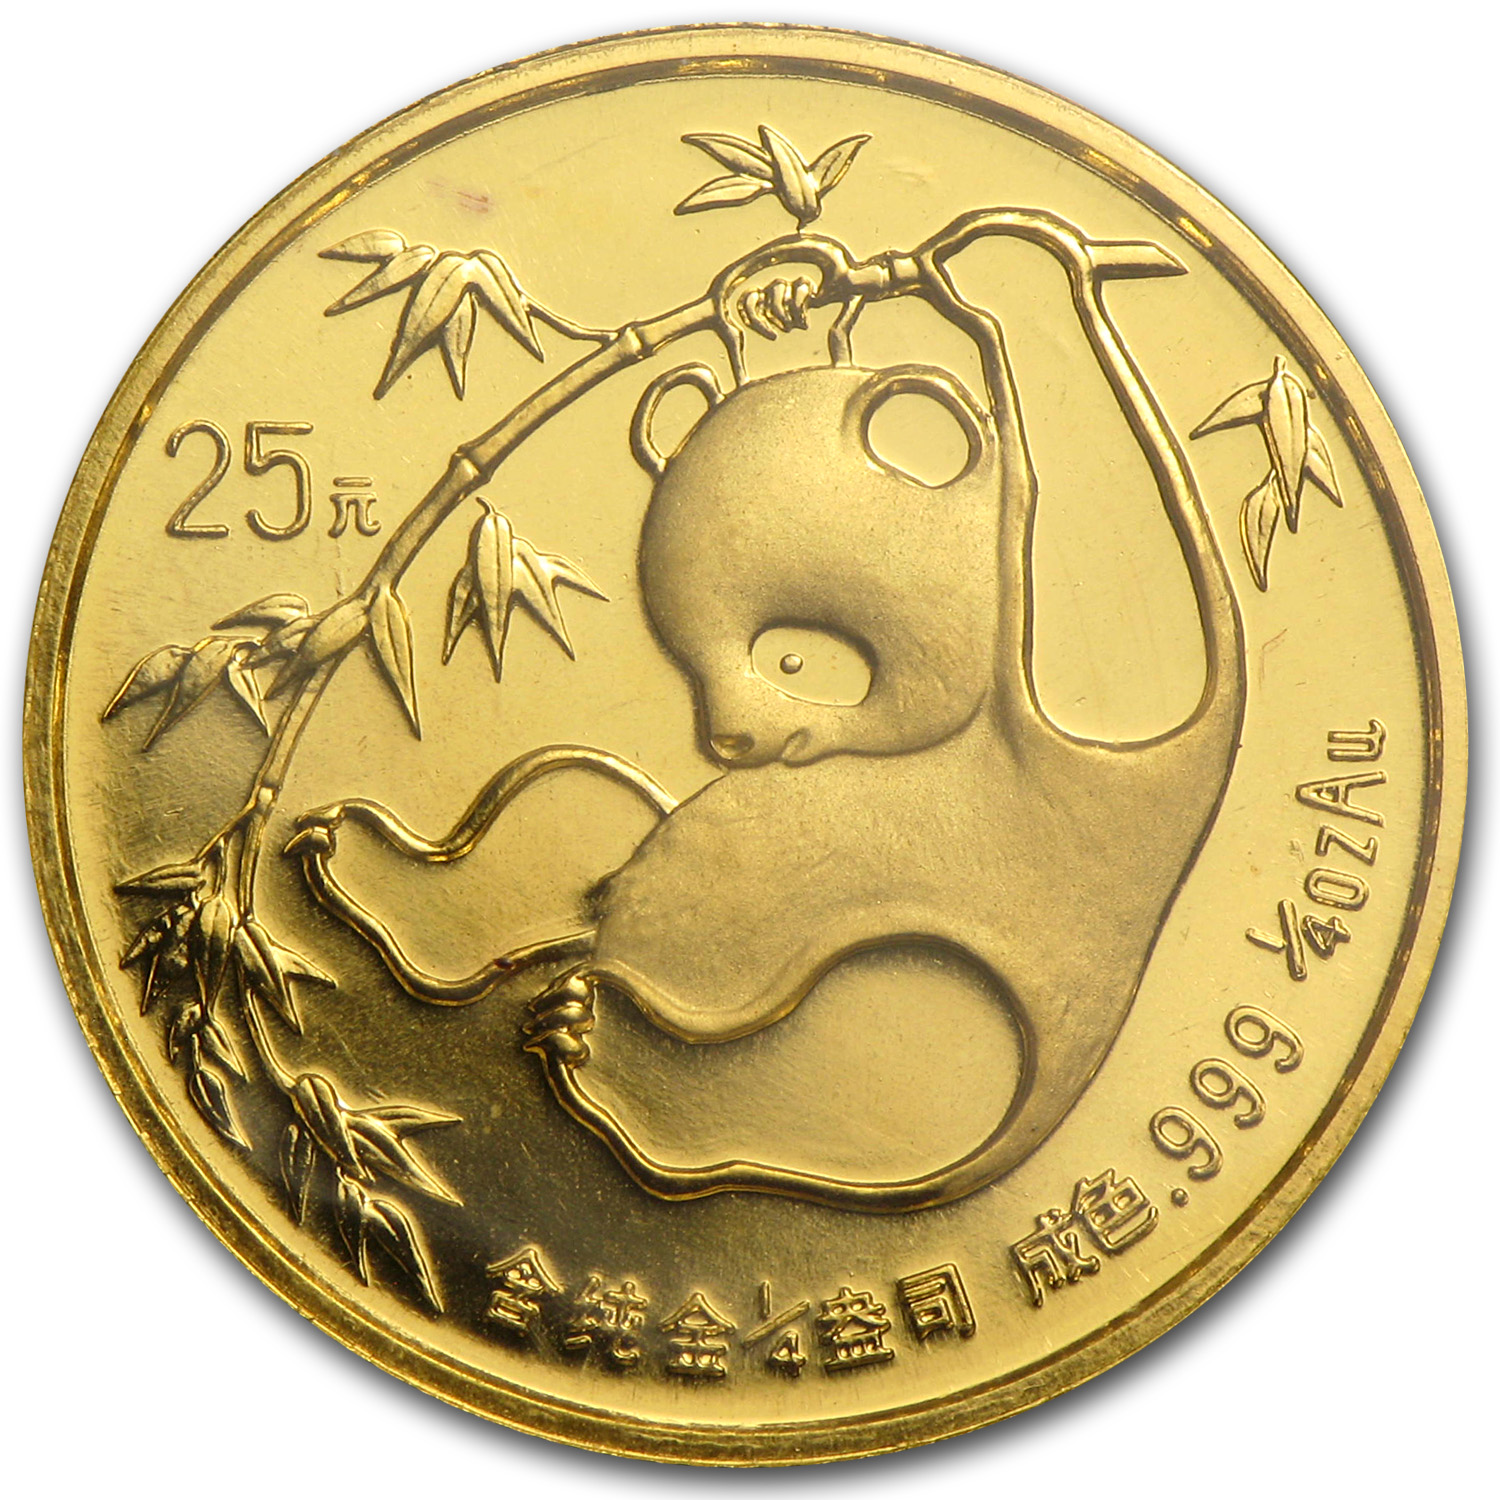 1985 China 1/4 oz Gold Panda BU (Sealed)